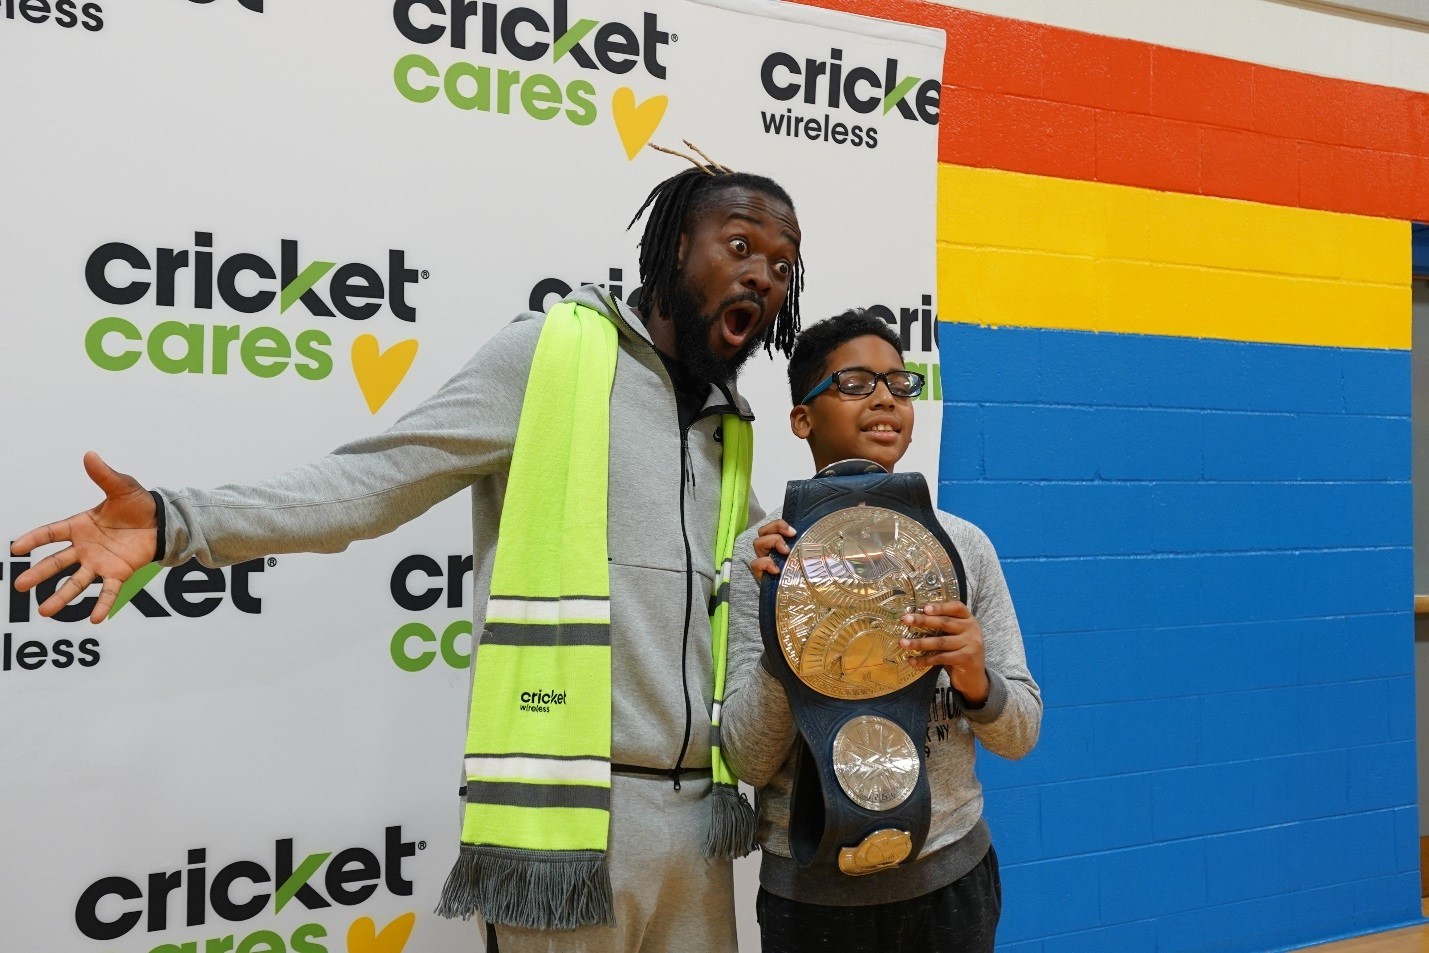 Kofi and our Cricket employees spreading some holiday cheer.